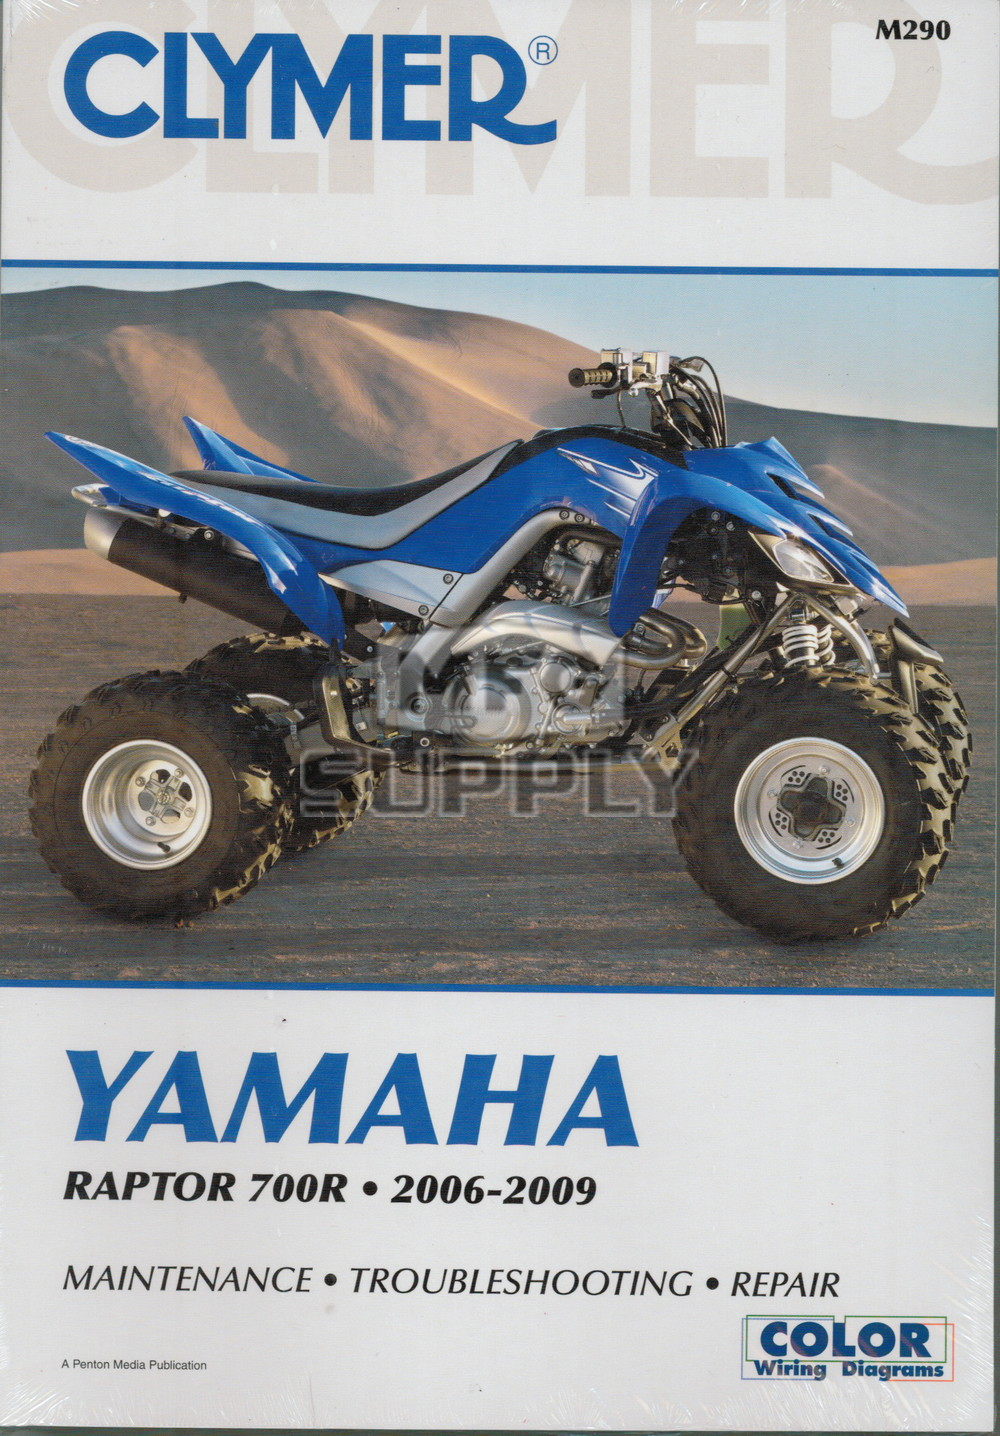 hight resolution of cm290 2006 2009 yamaha raptor 700r repair maintenance manual